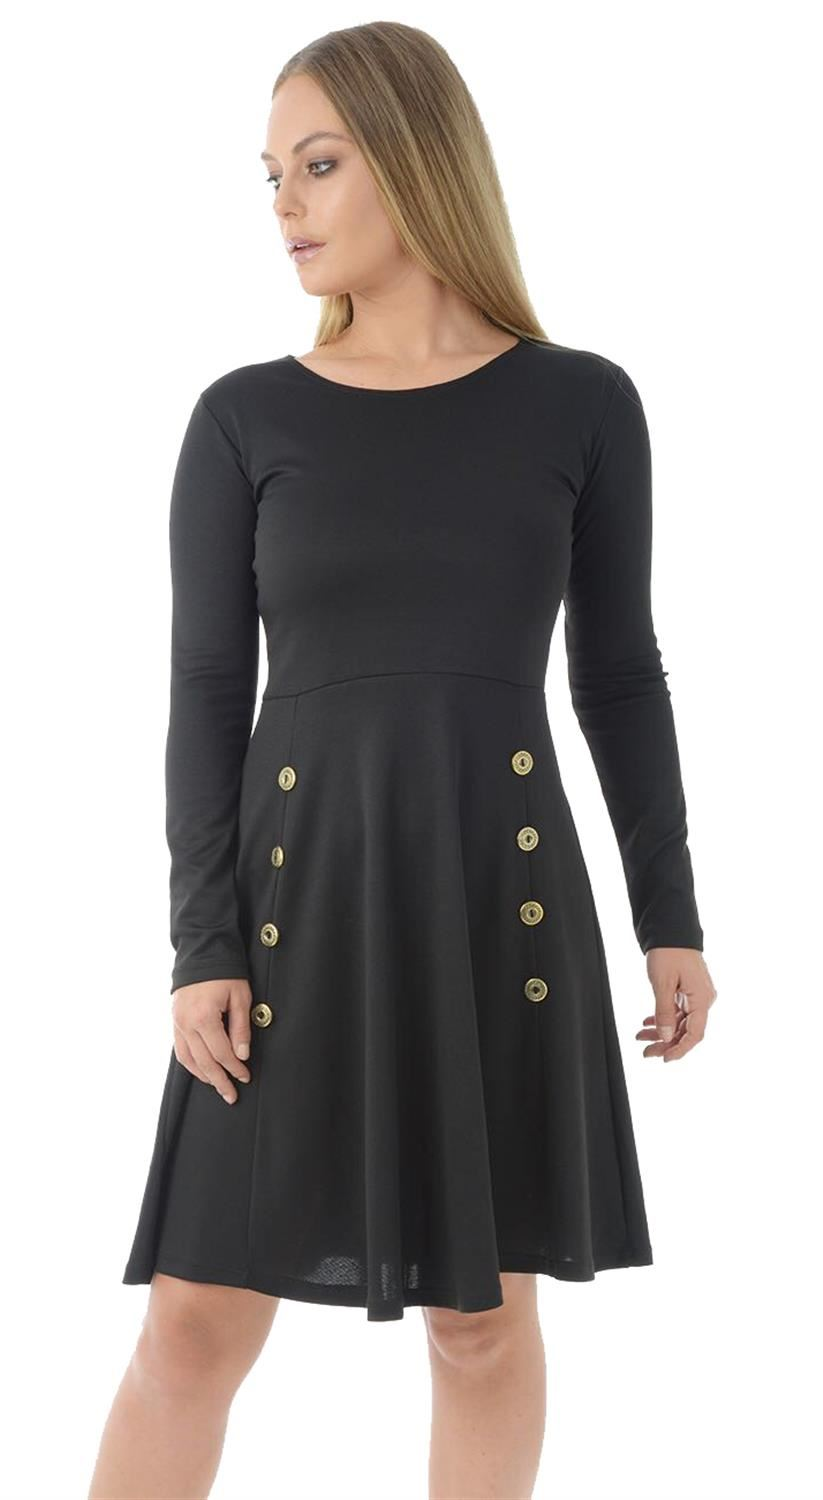 New Womens Military Button Long Sleeve Party Flared Skater Swing Dress 8-20